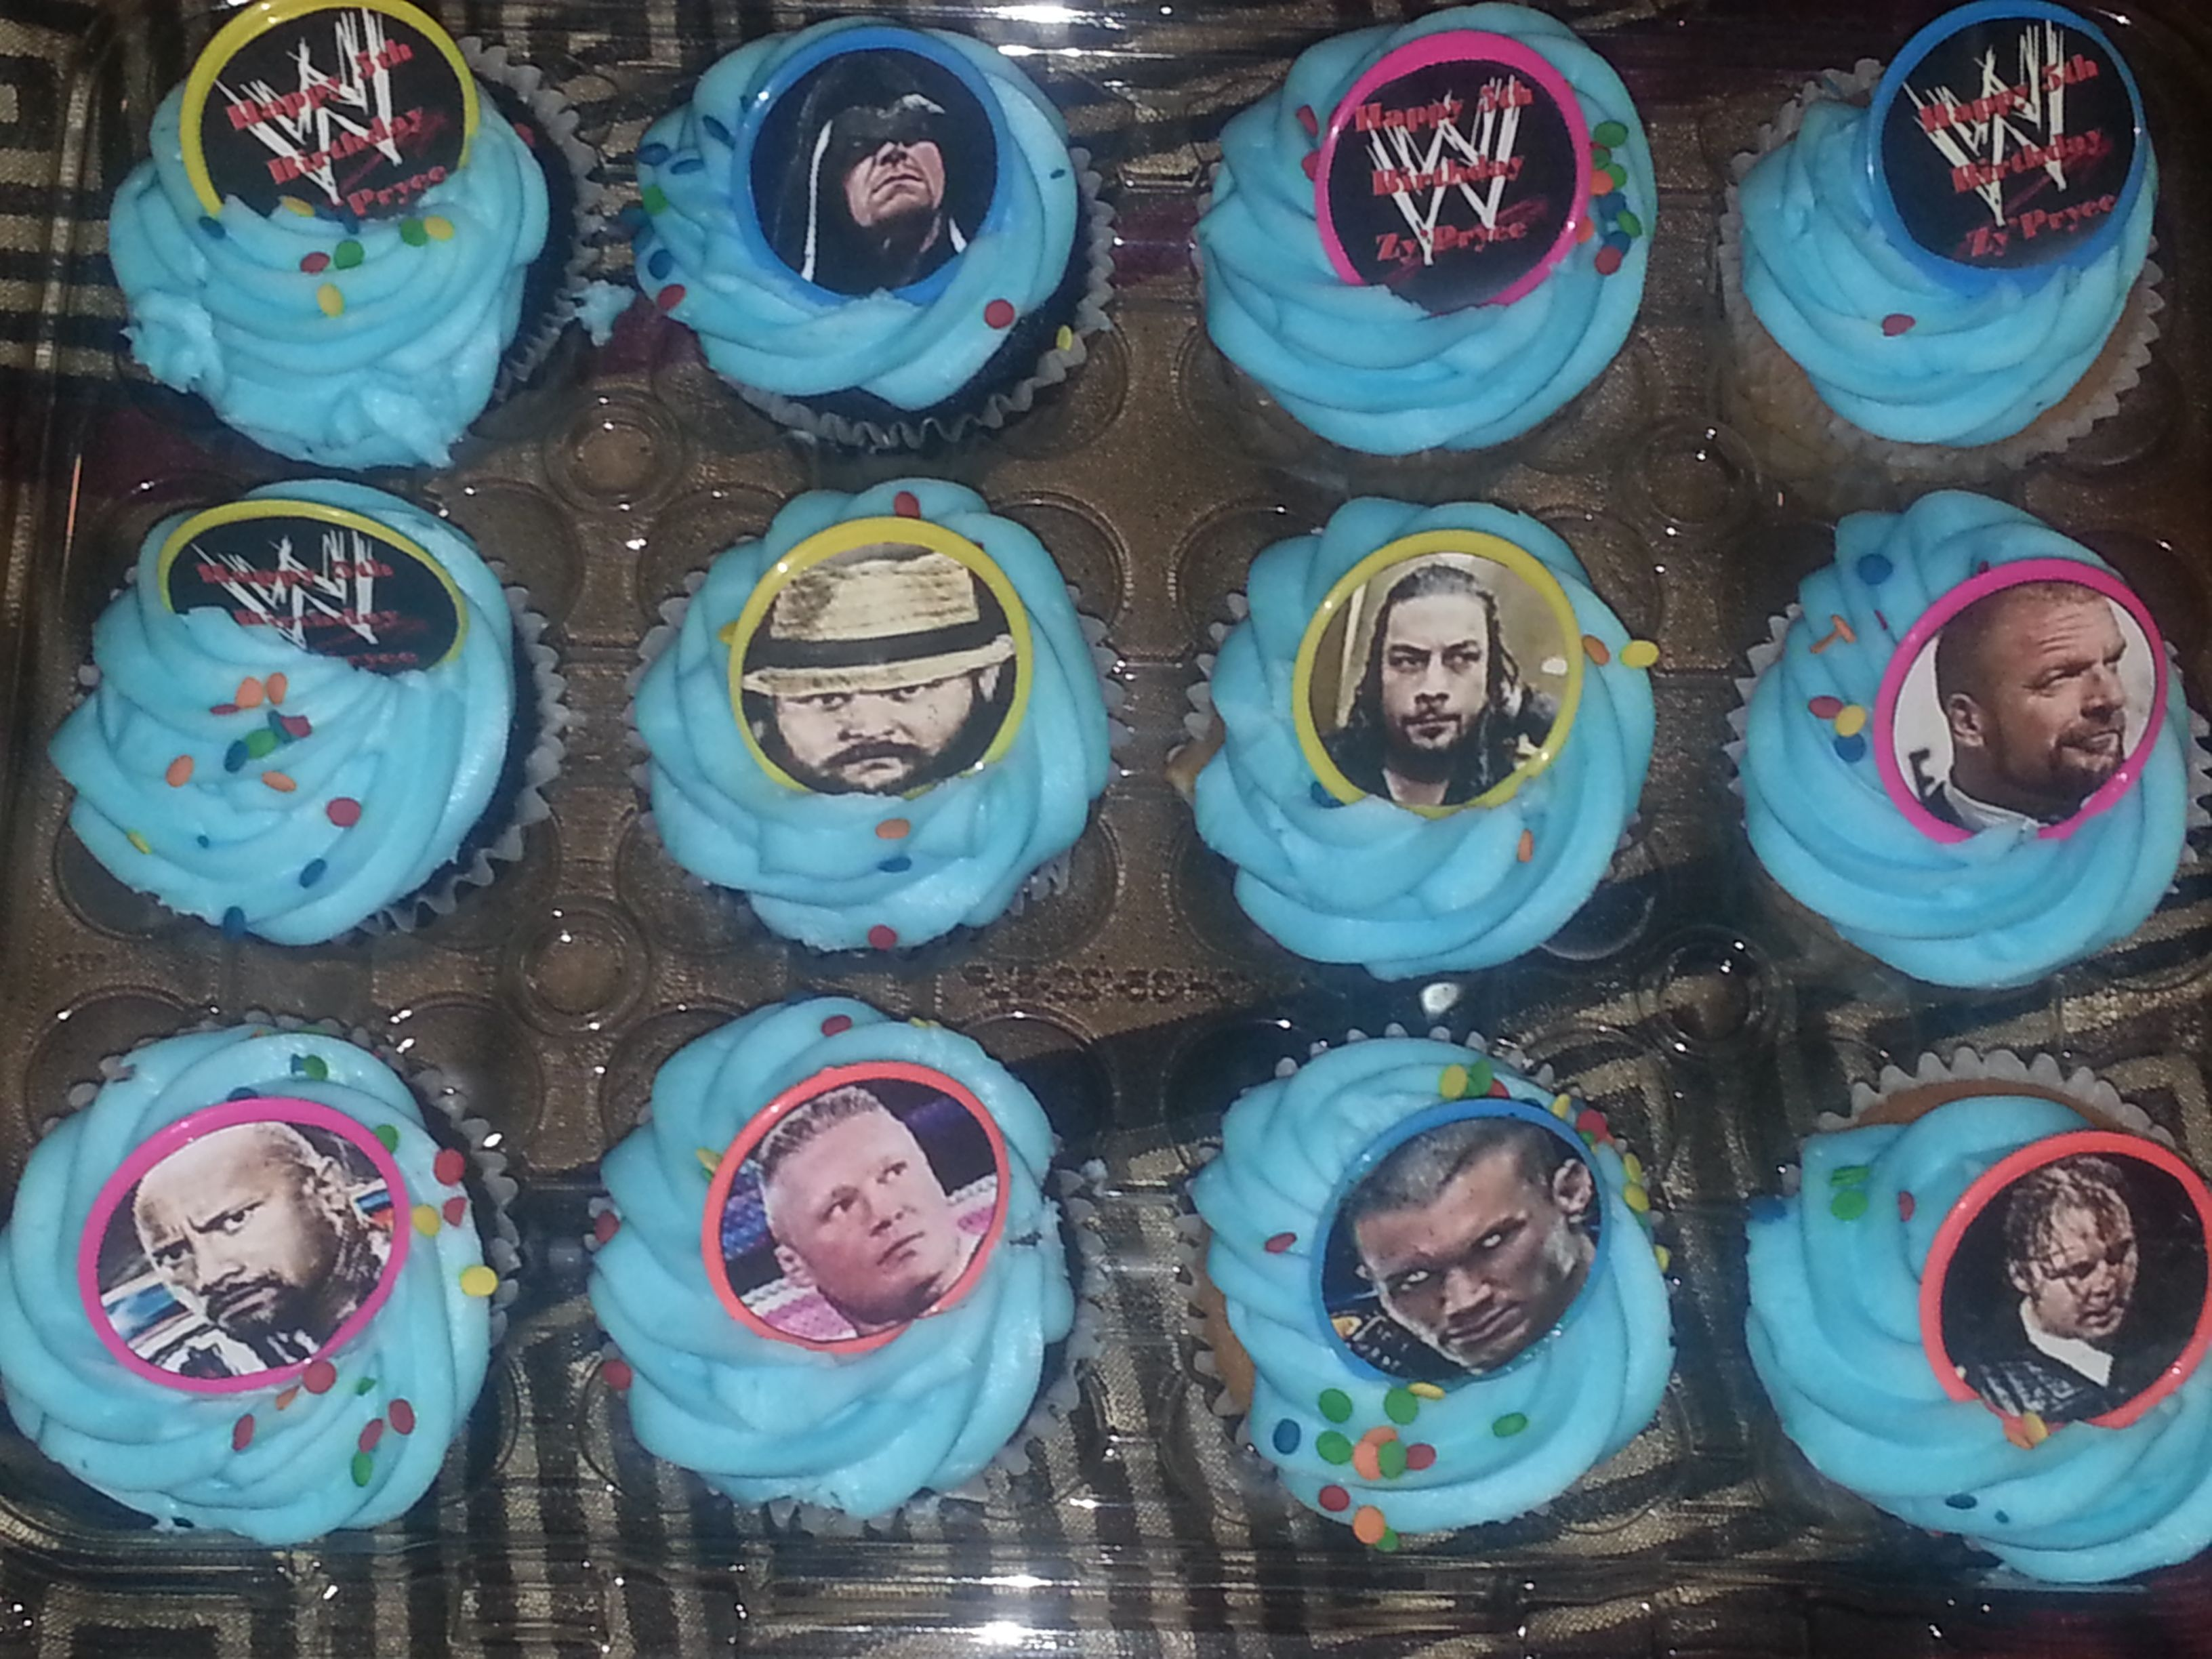 Wwe Birthday Cup Cakes Handmade Ring Toppers By Me Wwe